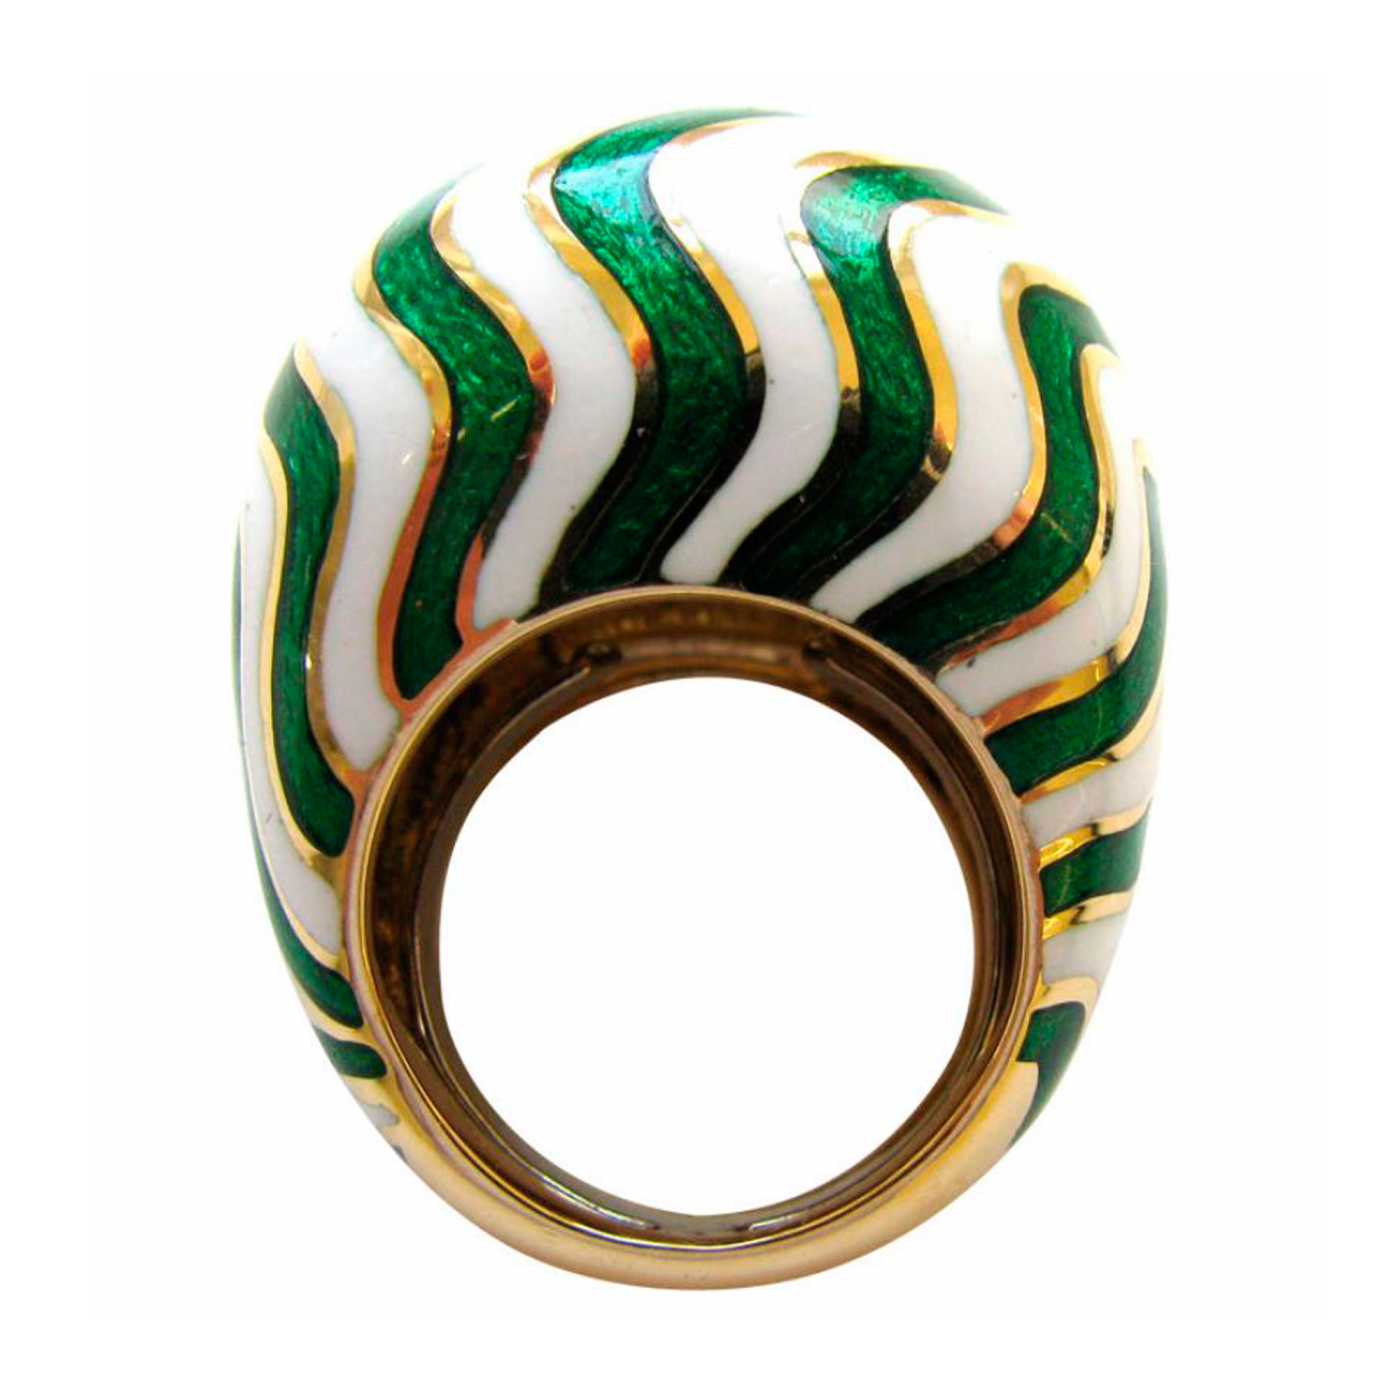 click jewelry orta here large to rings view baubles trinityfleurdelisenamelrings enamel other image aldo